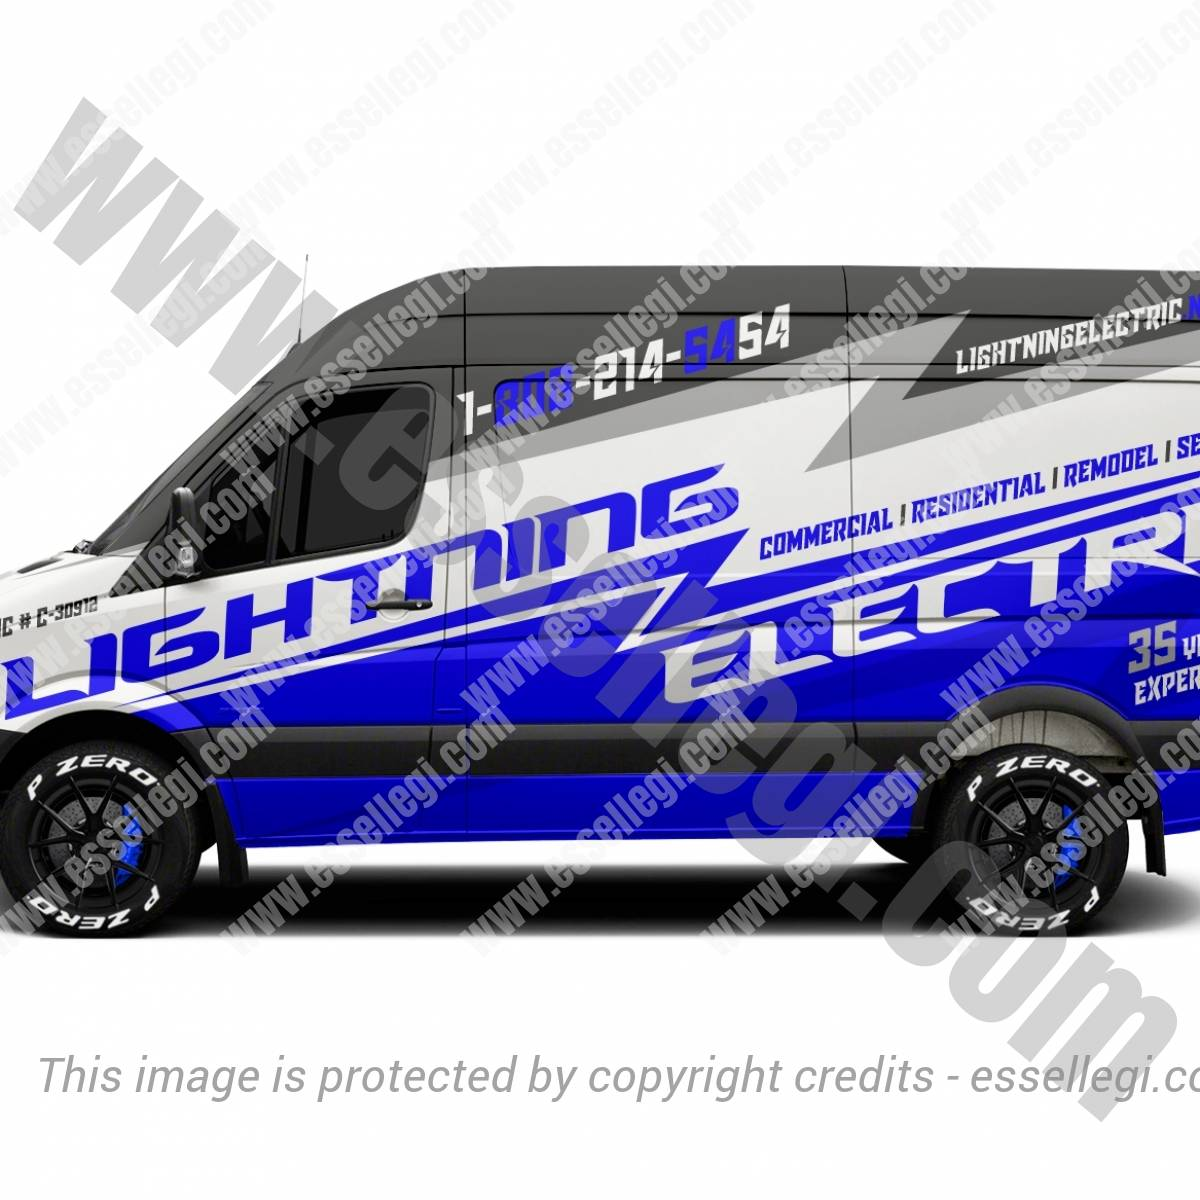 LIGHTNING | VAN WRAP DESIGN 🇺🇸